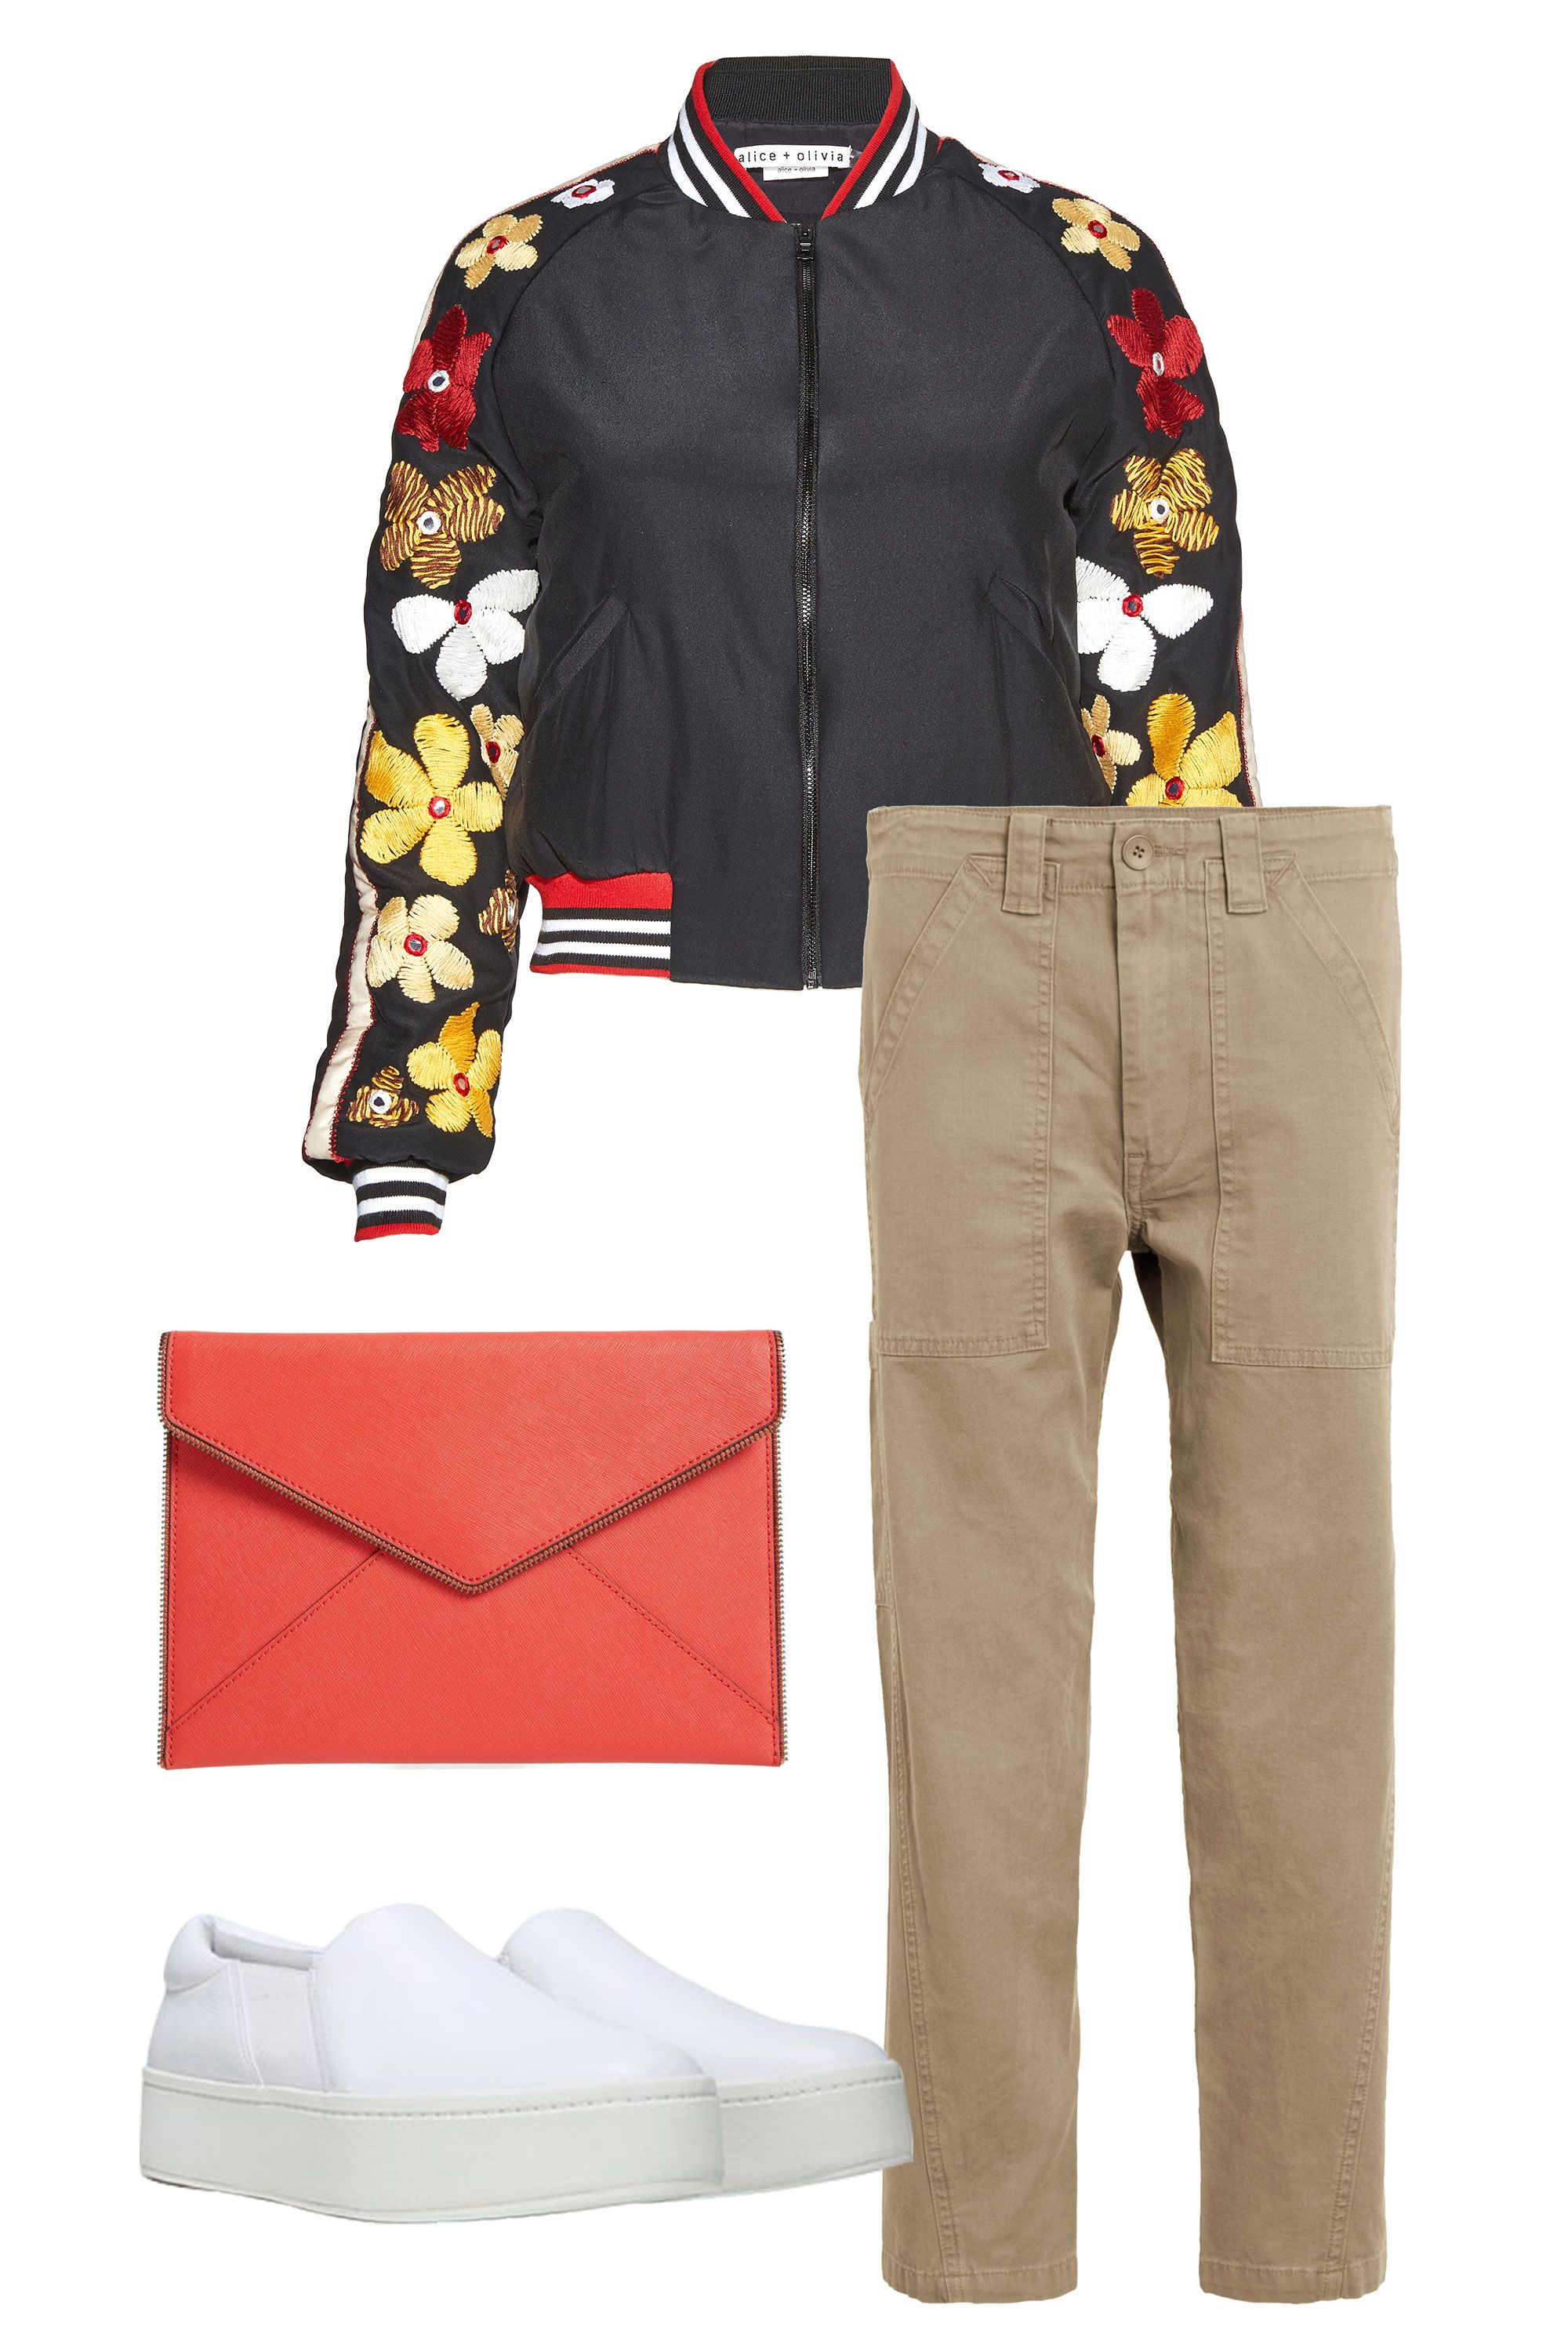 "<p> Keep your khakis cool with a sporty bomber jacket and a hip little clutch. Opt for slip-on sneakers that veer sleek rather than gym-ready.</p><p><span class=""redactor-invisible-space"" data-verified=""redactor"" data-redactor-tag=""span"" data-redactor-class=""redactor-invisible-space""></span></p><p><span class=""redactor-invisible-space"" data-verified=""redactor"" data-redactor-tag=""span"" data-redactor-class=""redactor-invisible-space""><em data-redactor-tag=""em""><em data-redactor-tag=""em"">Vince military pants, $245, <a href=""http://shop.nordstrom.com/s/vince-military-pants/4549120?origin=keywordsearch-personalizedsort&fashioncolor=OLIVE"" target=""_blank"" data-tracking-id=""recirc-text-link"">nordstrom.com</a>; Alice + Olivia jacket, $595, <a href=""http://shop.nordstrom.com/s/alice-olivia-tony-silk-bomber-jacket/4536211?origin=keywordsearch-personalizedsort&fashioncolor=BLACK%20MULTI"" target=""_blank"" data-tracking-id=""recirc-text-link"">nordstrom.com</a>; Vince sneakers, $225, <a href=""http://shop.nordstrom.com/s/vince-warren-slip-on-sneaker-women/4421543?origin=keywordsearch-personalizedsort&fashioncolor=PLASTER%20LEATHER"" target=""_blank"" data-tracking-id=""recirc-text-link"">nordstrom.com</a>; Rebecca Minkoff clutch, $95, <a href=""http://shop.nordstrom.com/s/rebecca-minkoff-leo-envelope-clutch/3853690?origin=keywordsearch-personalizedsort&fashioncolor=BLOOD%20ORANGE%2F%20GUNMETAL"" target=""_blank"" data-tracking-id=""recirc-text-link"">nordstrom.com</a></em></em><br></span></p>"